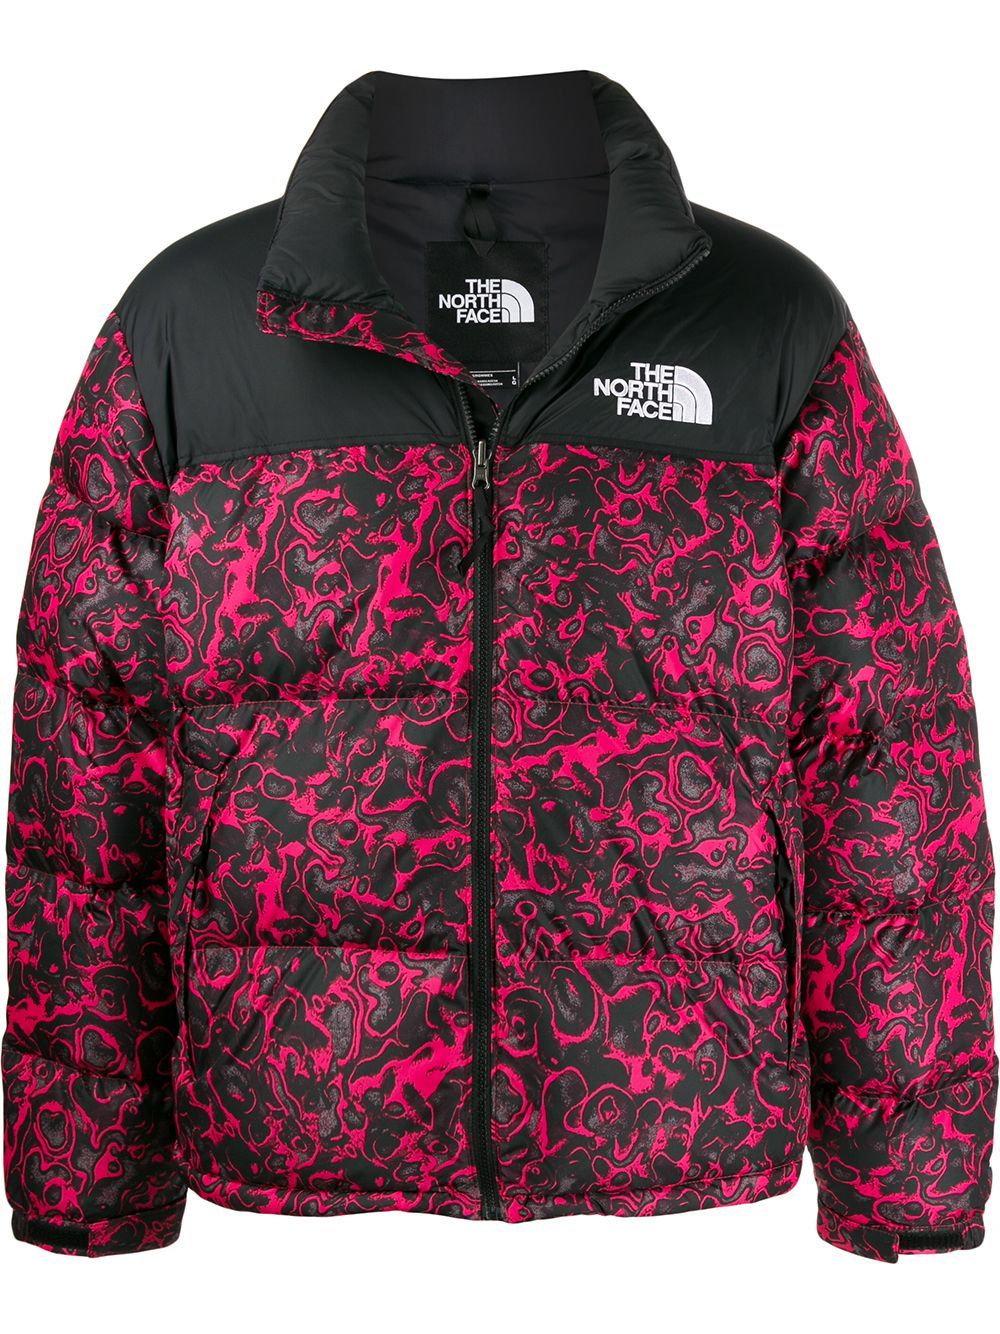 The North Face Graphic Puffer Jacket Farfetch North Face Puffer Jacket North Face Jacket The North Face [ 1334 x 1000 Pixel ]